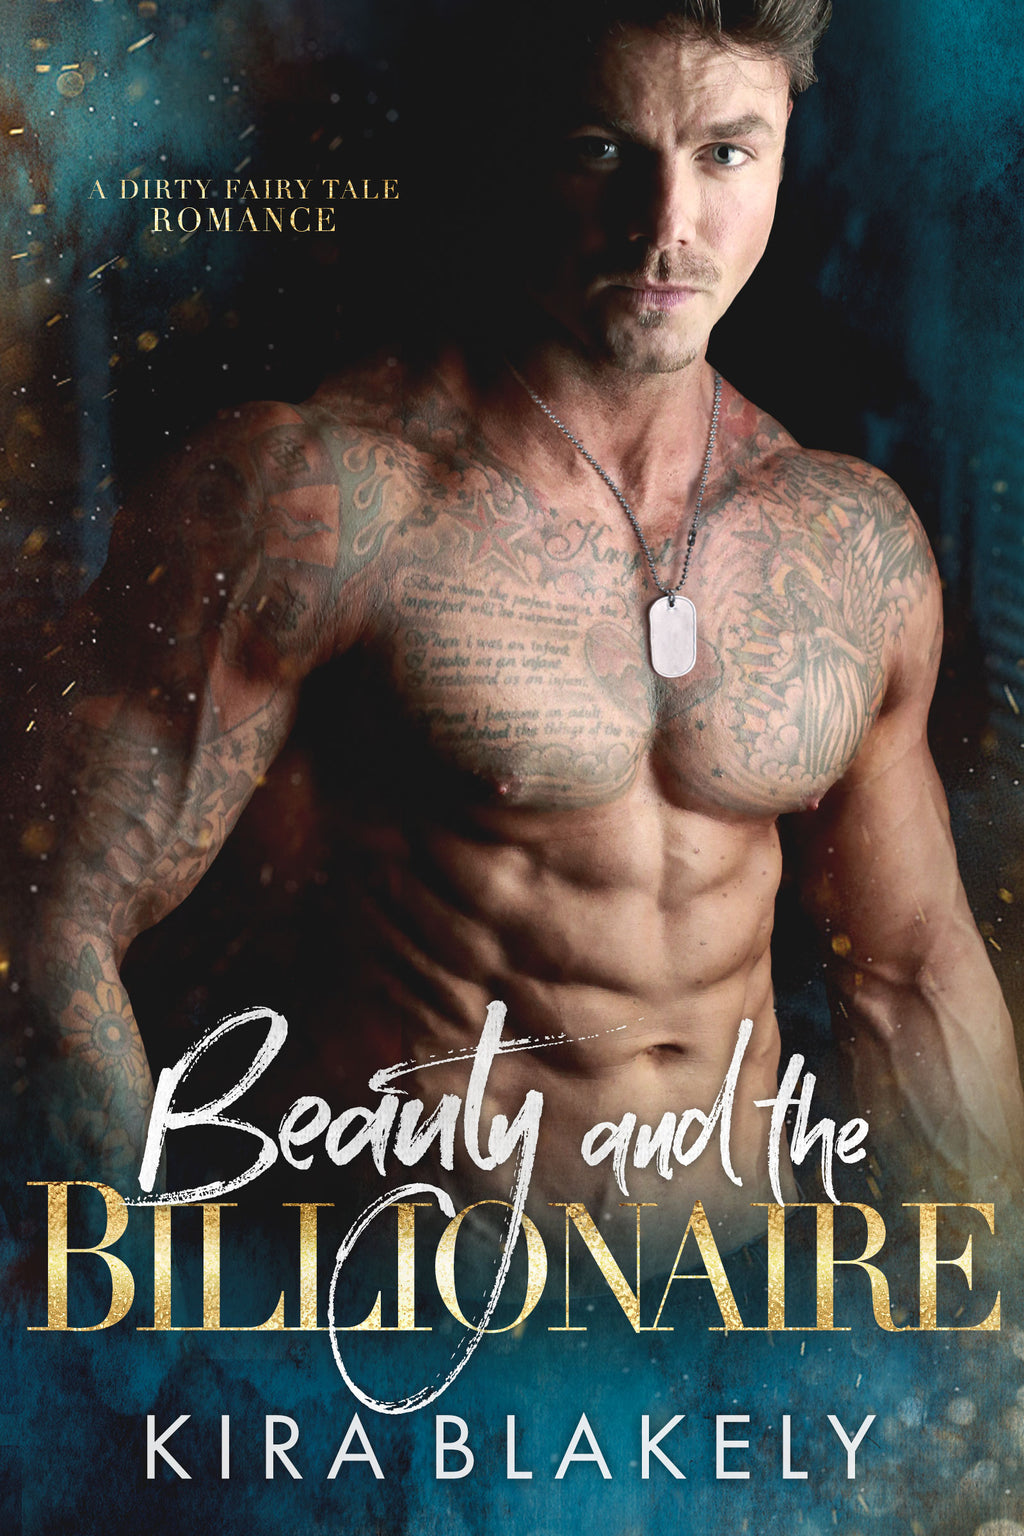 Beauty and the Billionaire - Author Kira Blakely